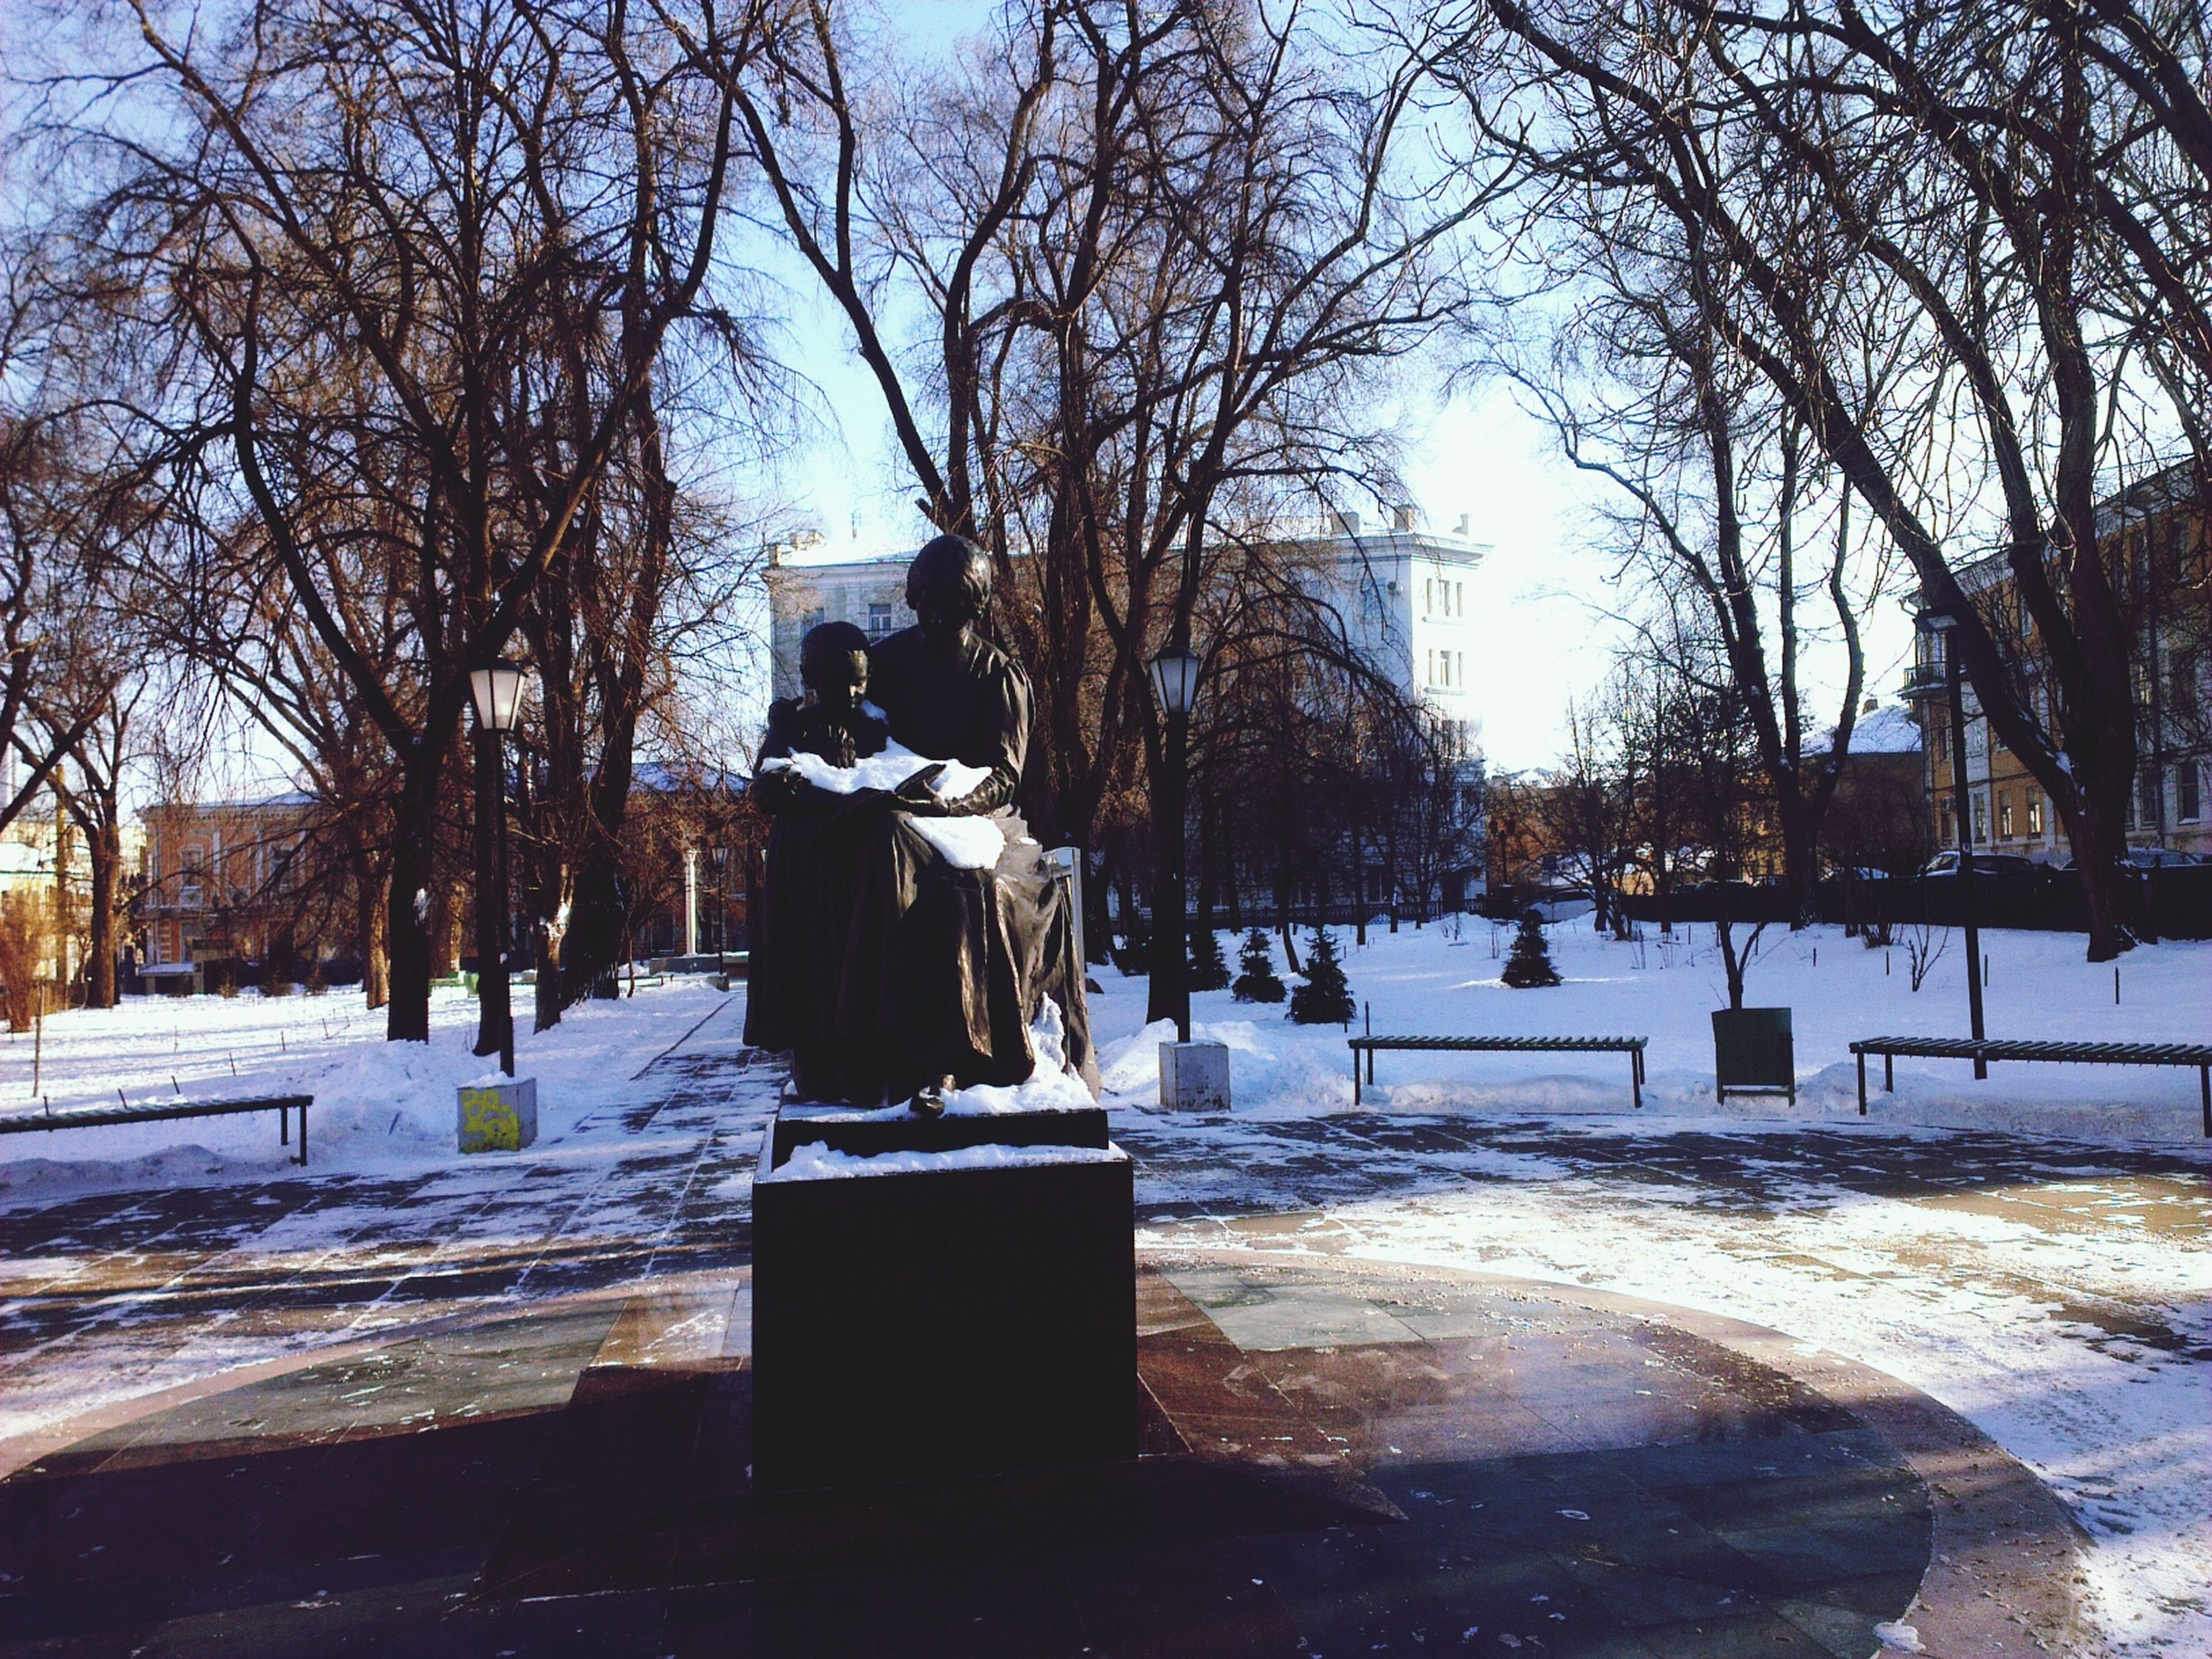 tree, building exterior, built structure, architecture, bare tree, snow, winter, cold temperature, city, season, sky, water, frozen, street, incidental people, day, branch, outdoors, fountain, park - man made space